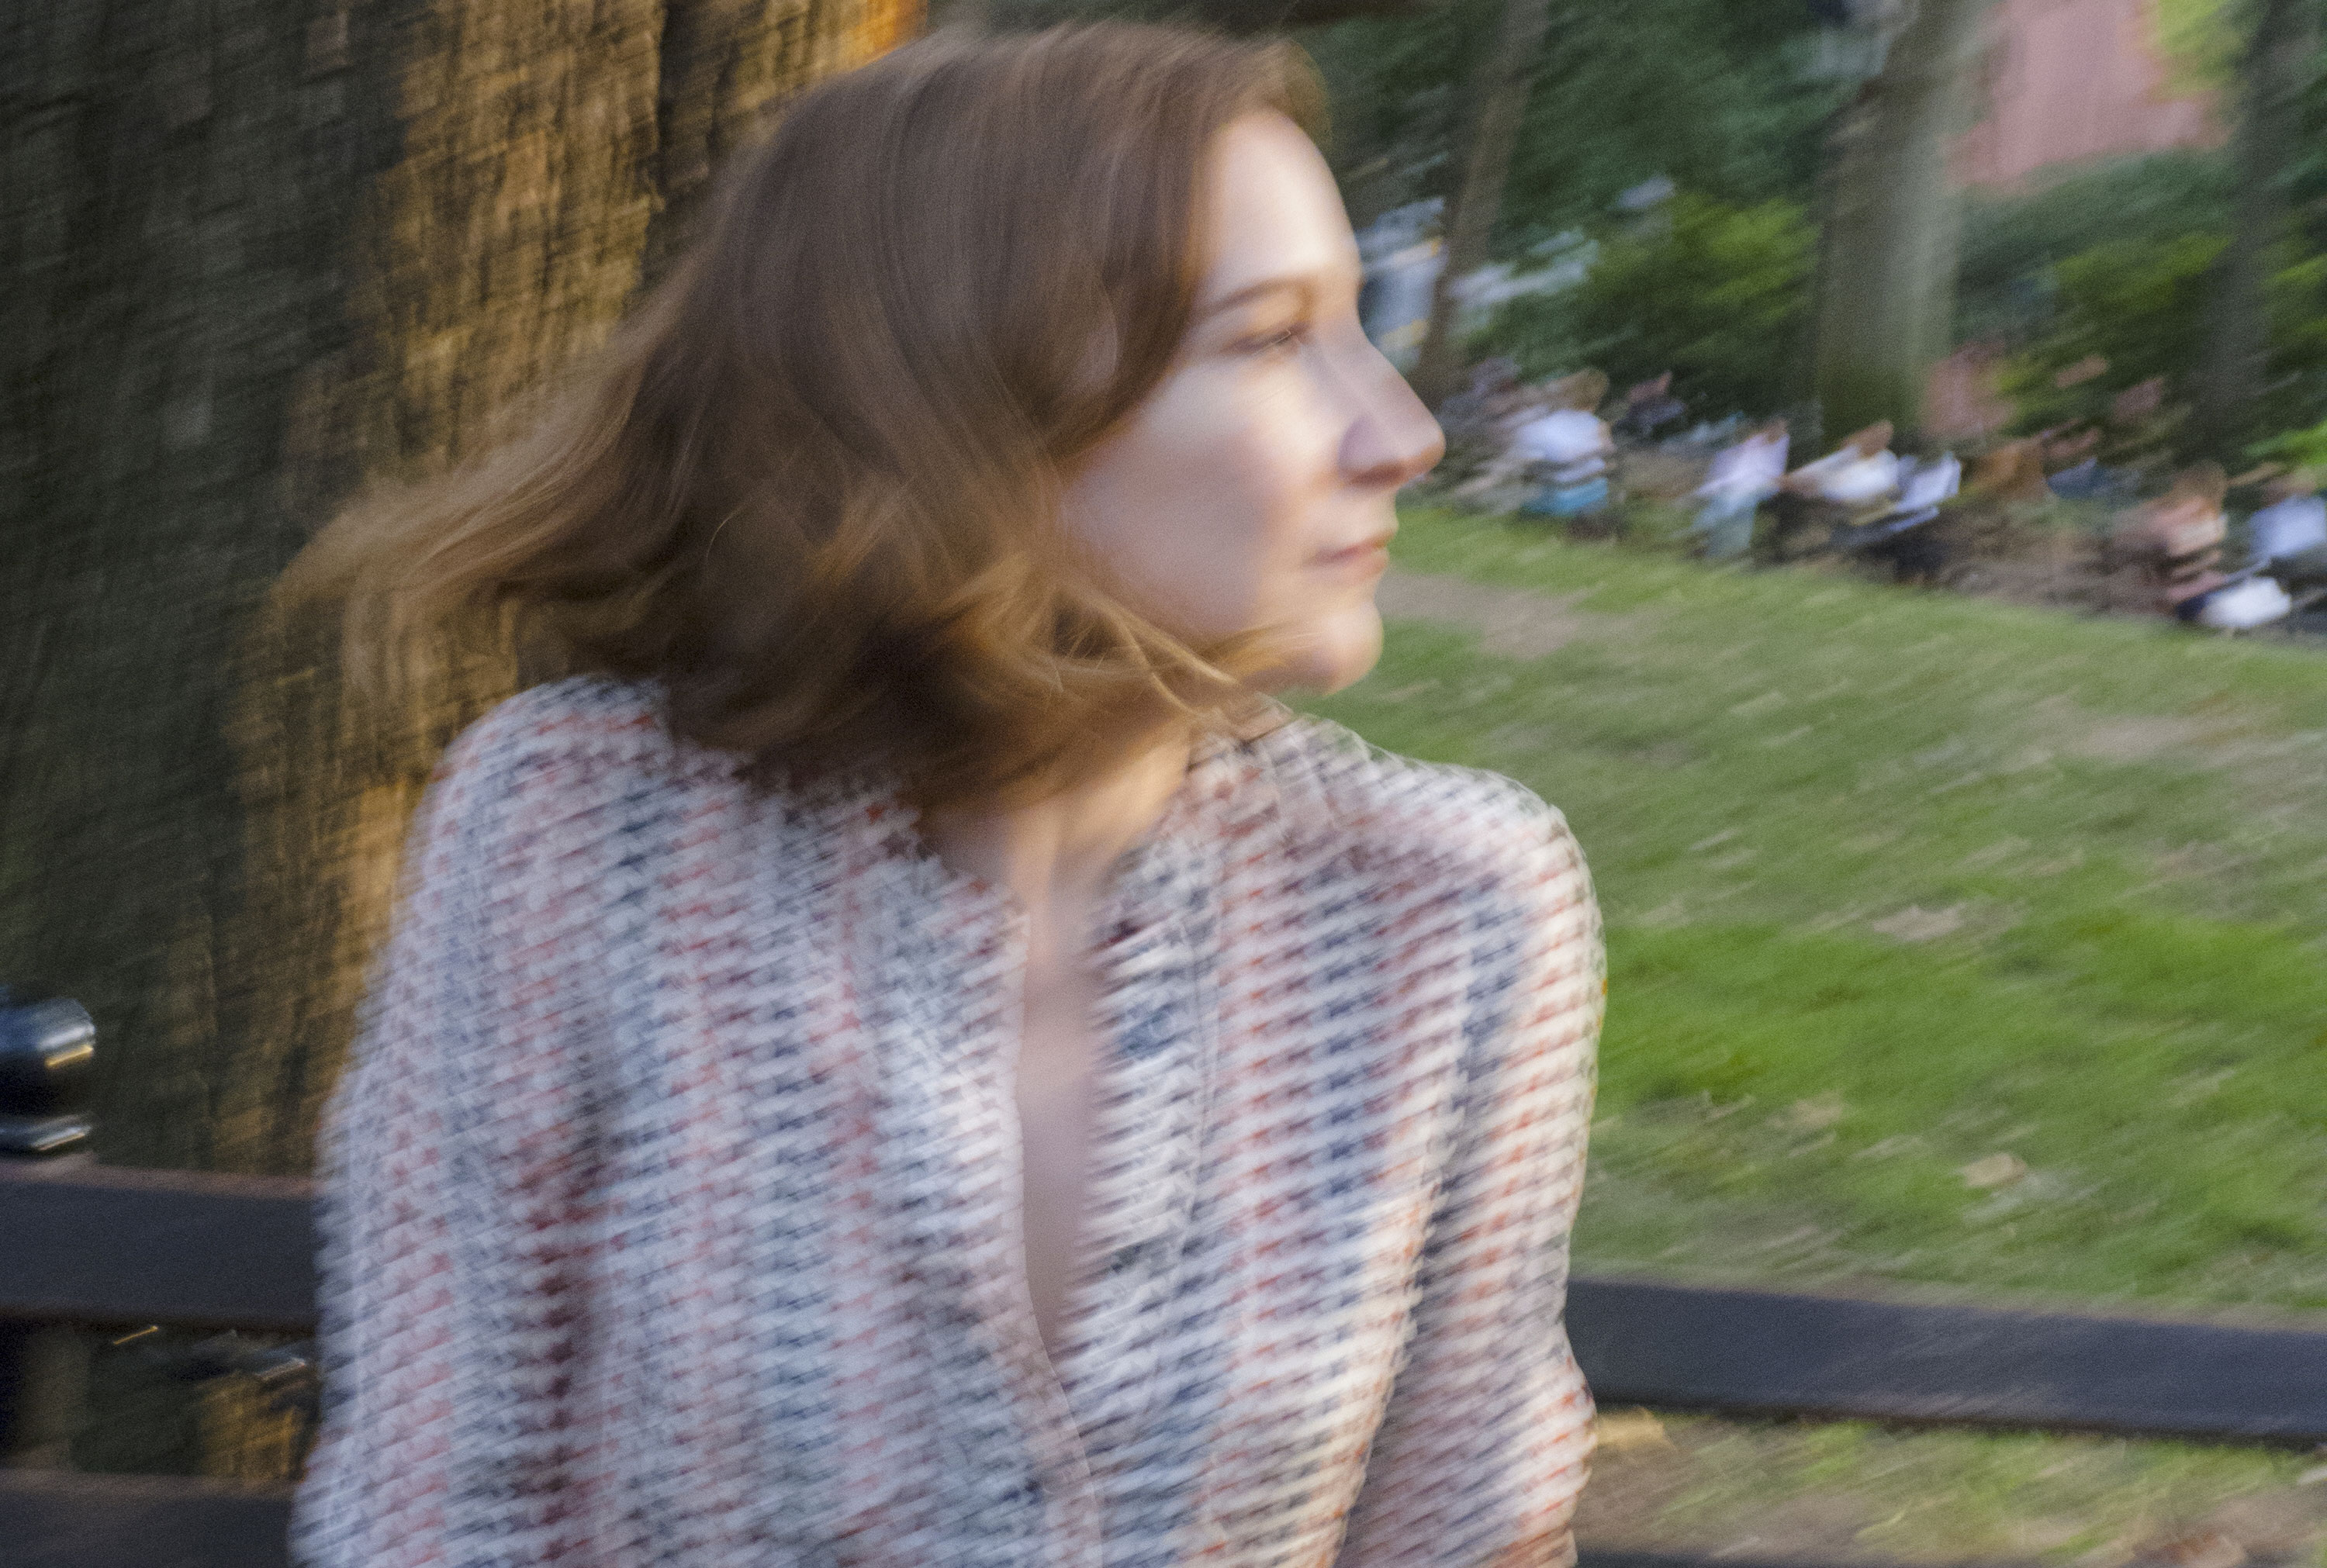 Sheila Heti Asks What is Gained And What is Lost When a Woman Becomes a Mother